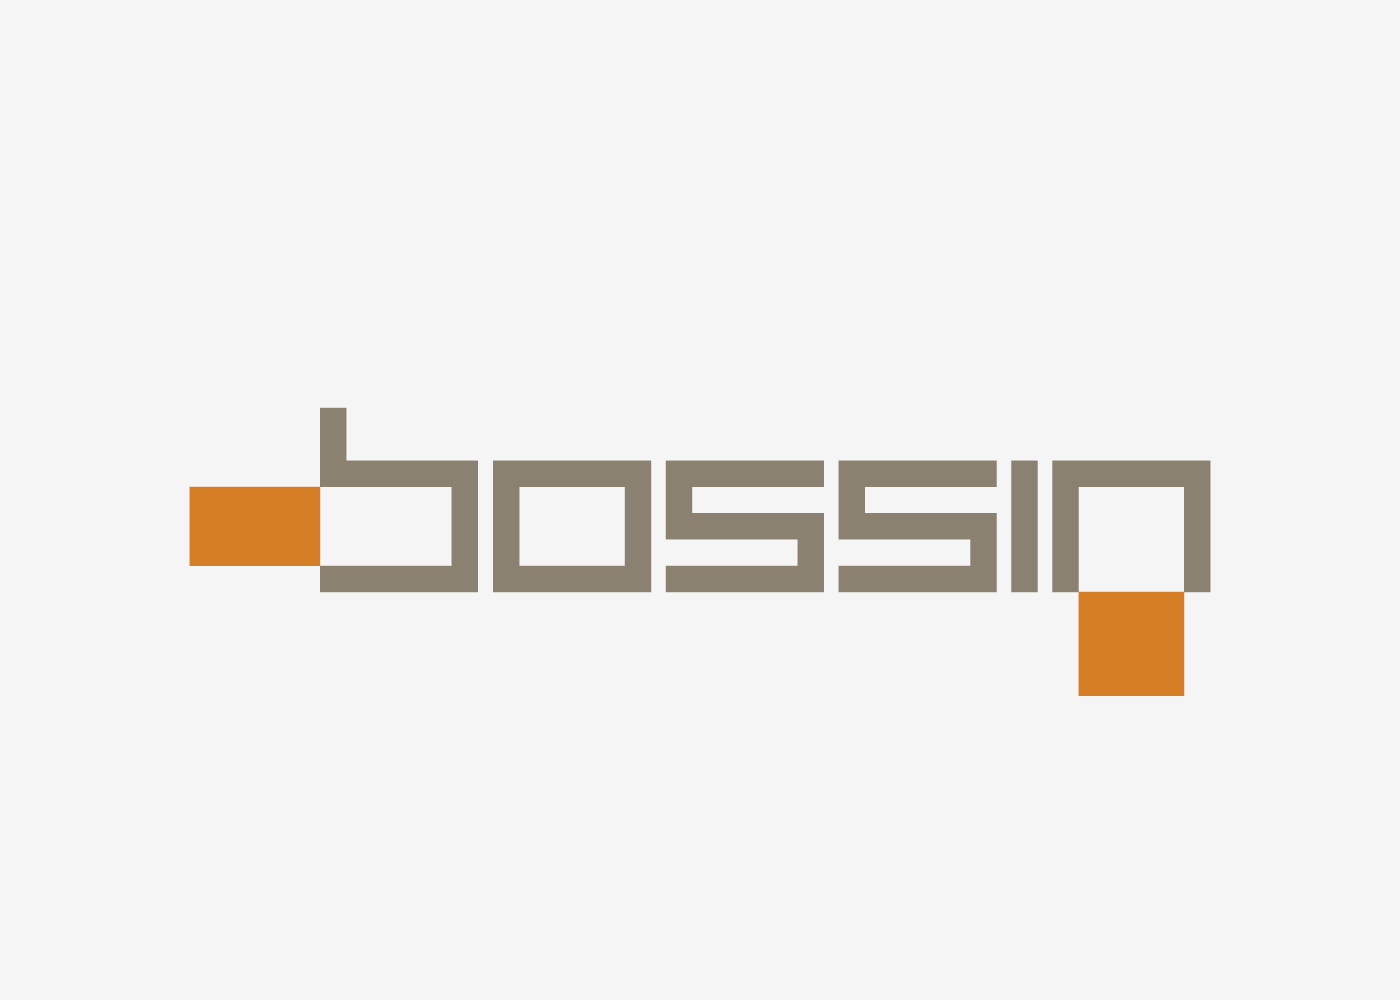 The new visual identity of the Bossin company